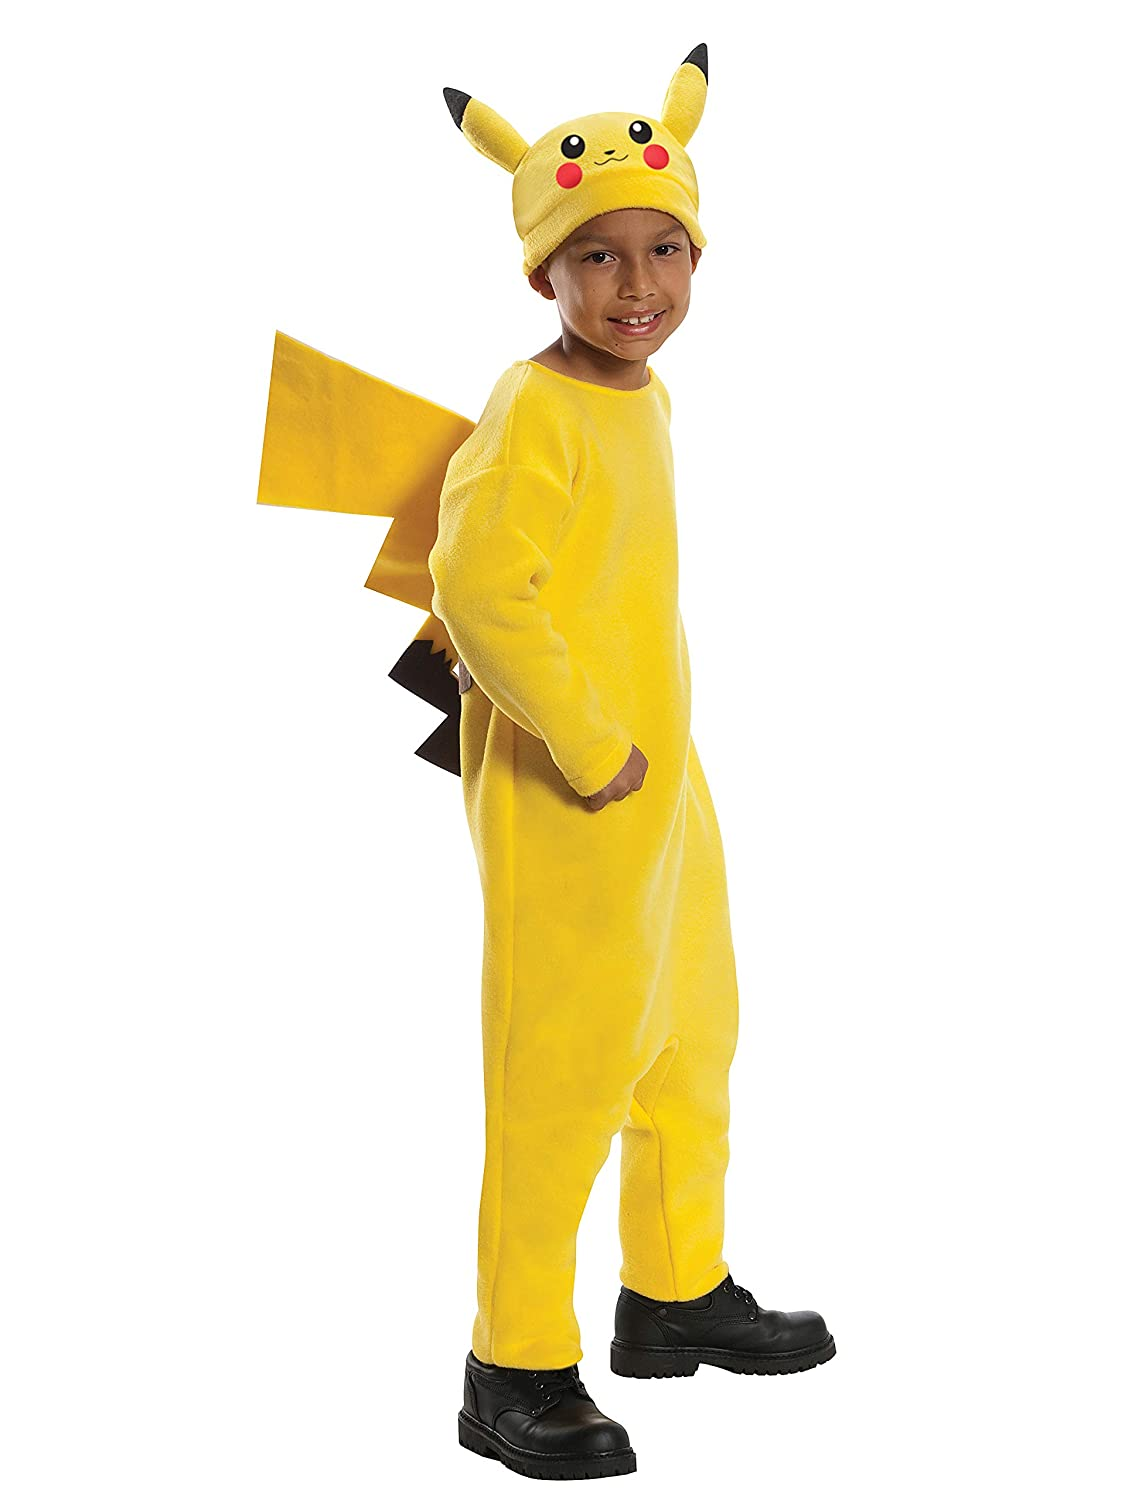 Rubie's Pokemon Child's Deluxe Pikachu Costume - One Color - Medium Rubies - Domestic 884779-Medium